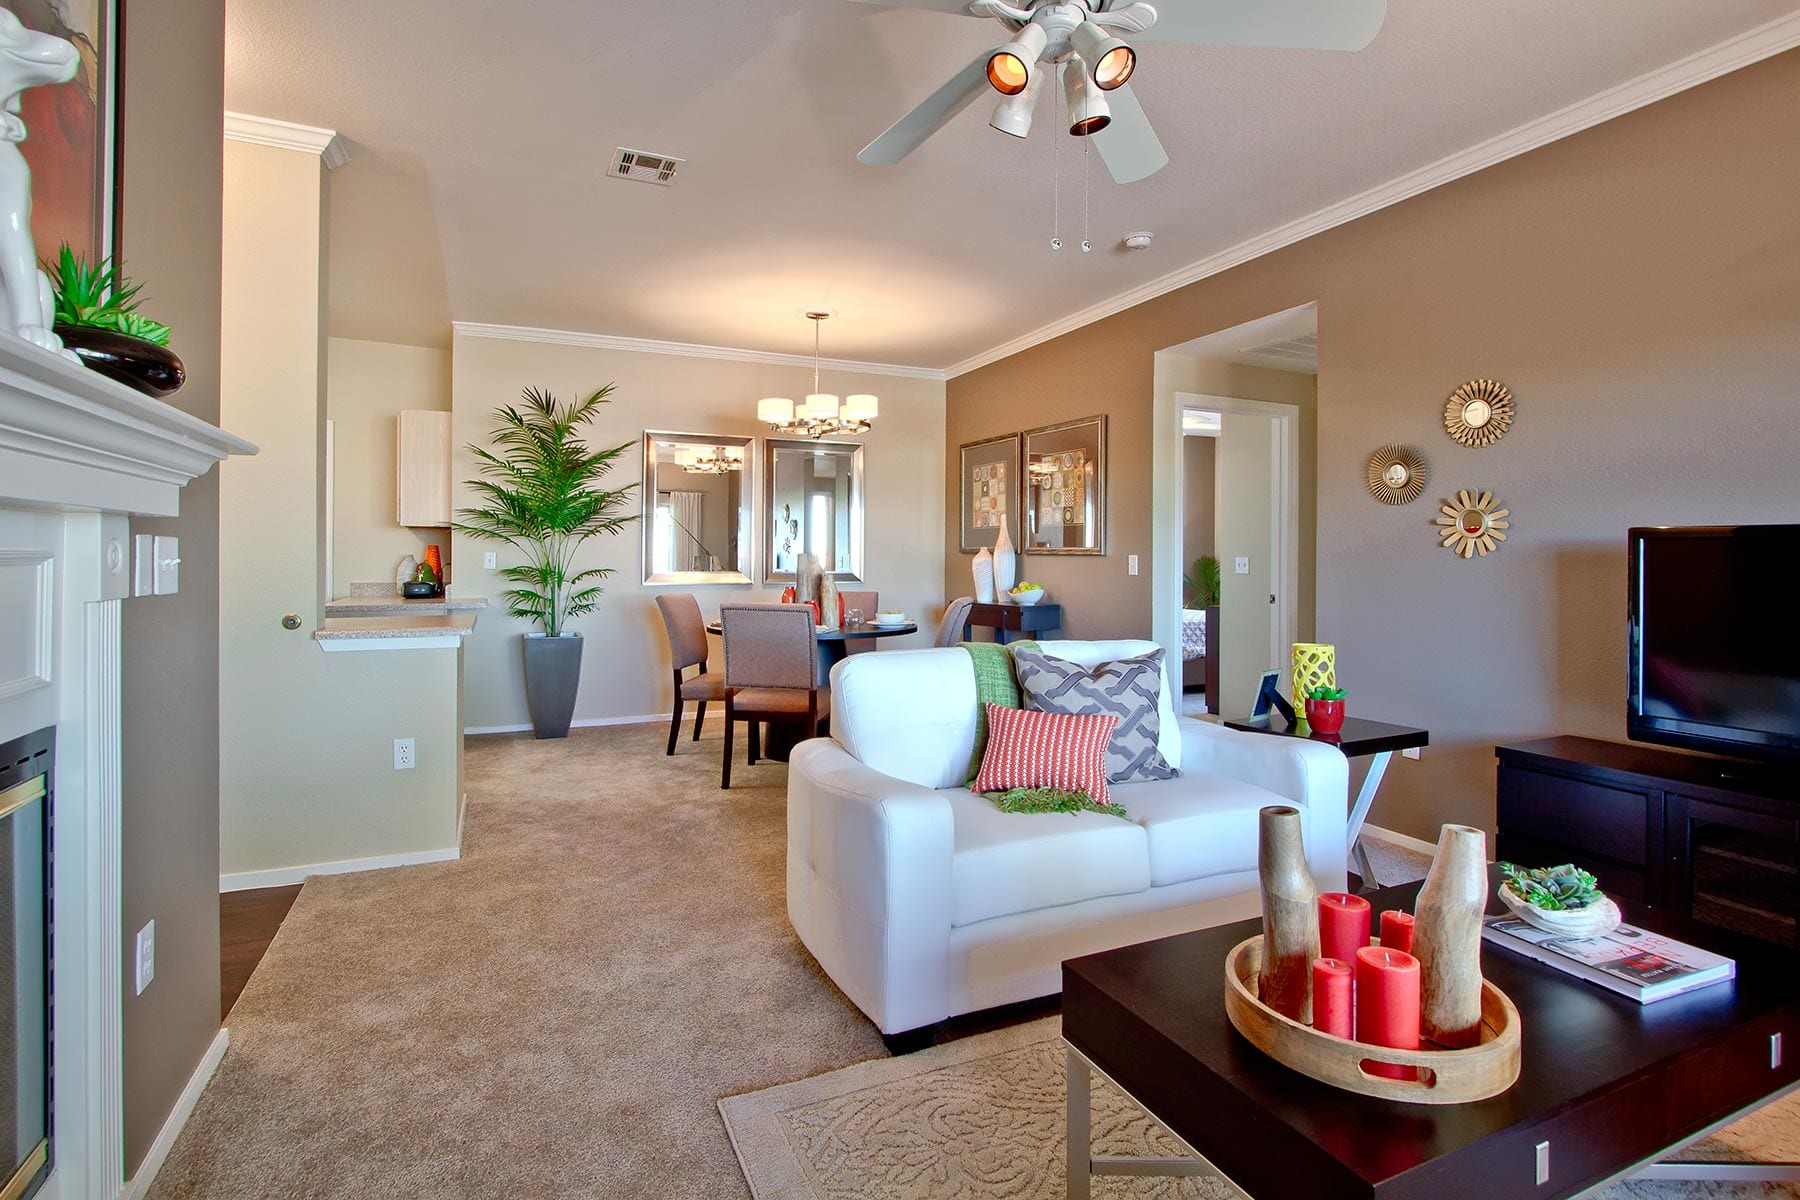 An inviting living/dining space with soft carpeting, plush seating, and a warm fireplace.